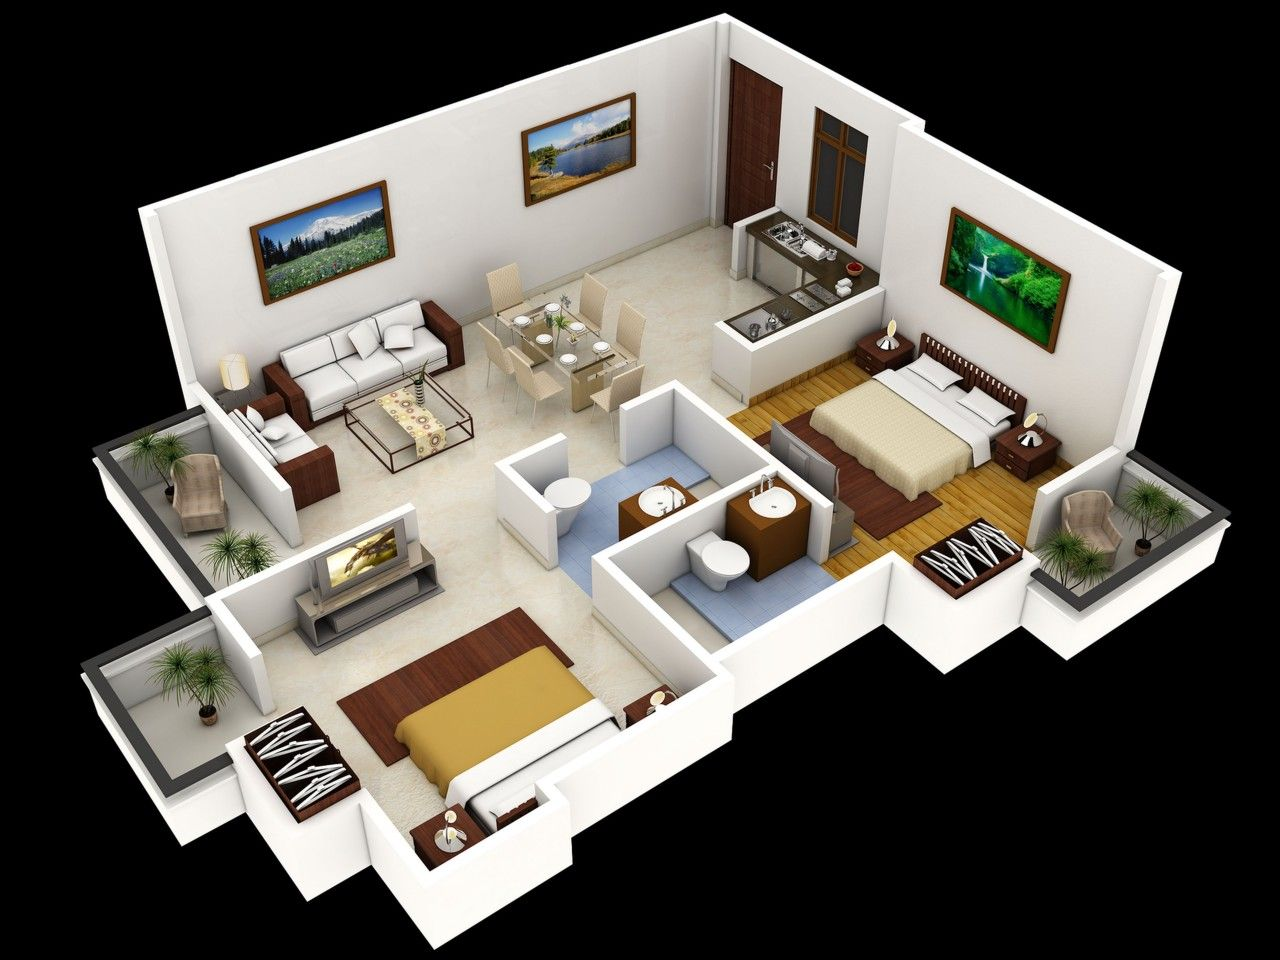 Comely designing  house innovation hot small design ideas stunning furnishings concept  home plans marvelous astonishing ranch also rh pinterest